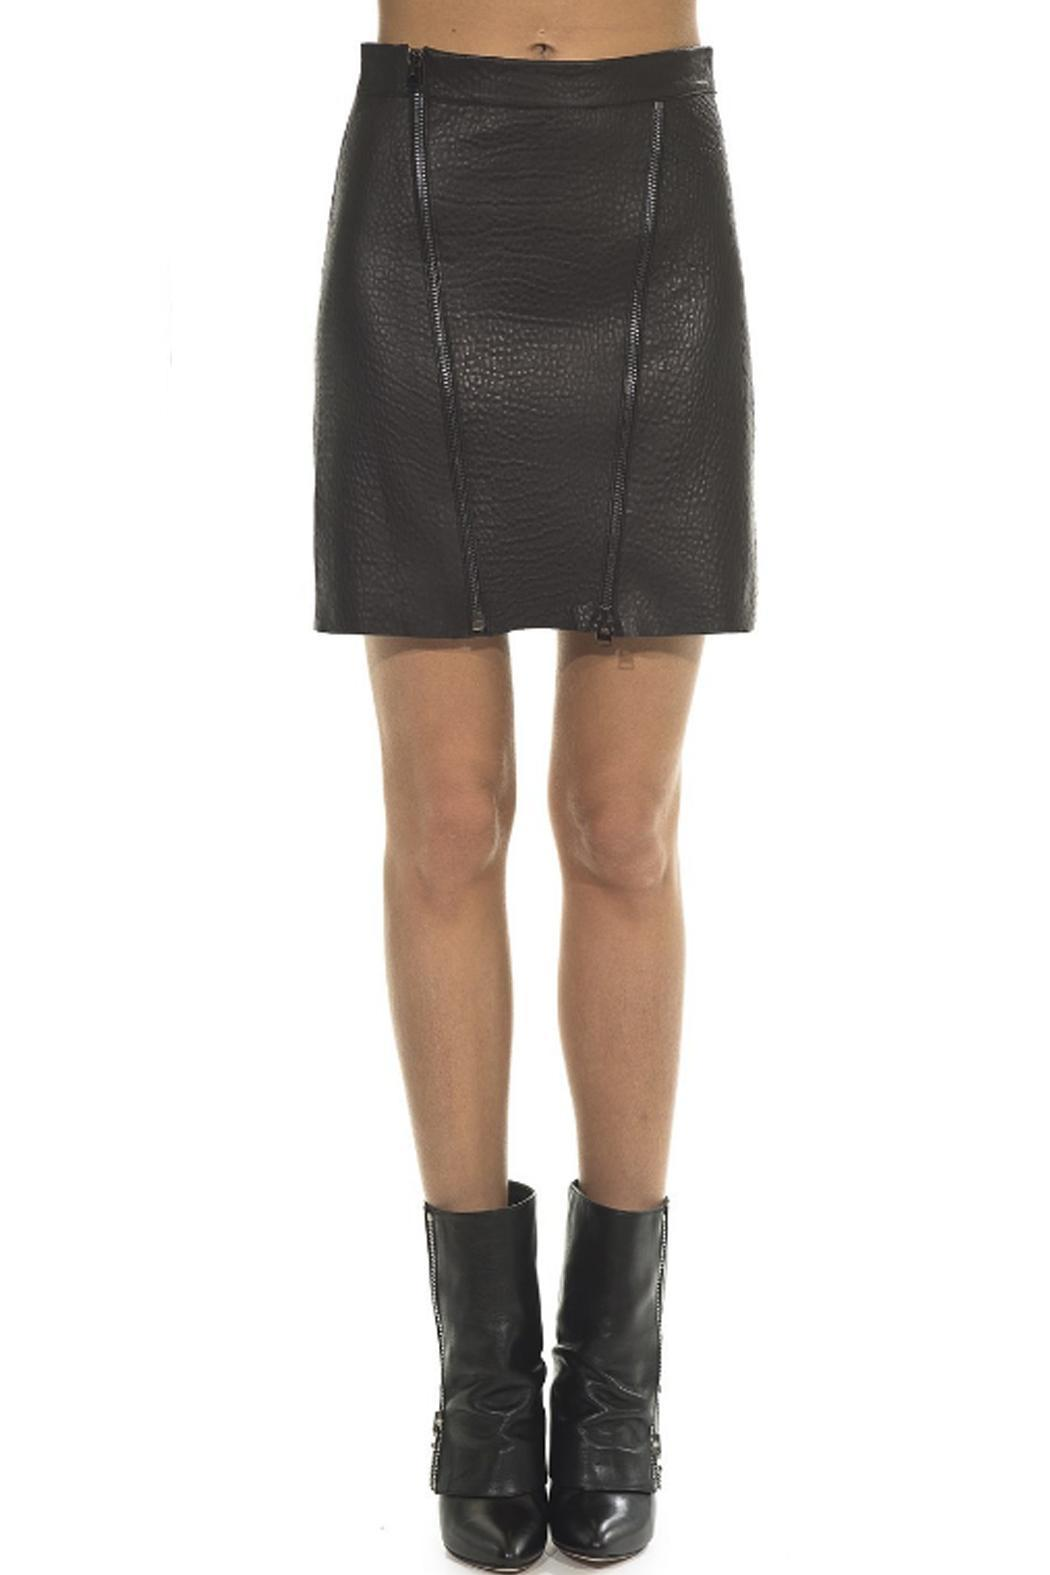 hotel particulier Black Leather Skirt - Main Image